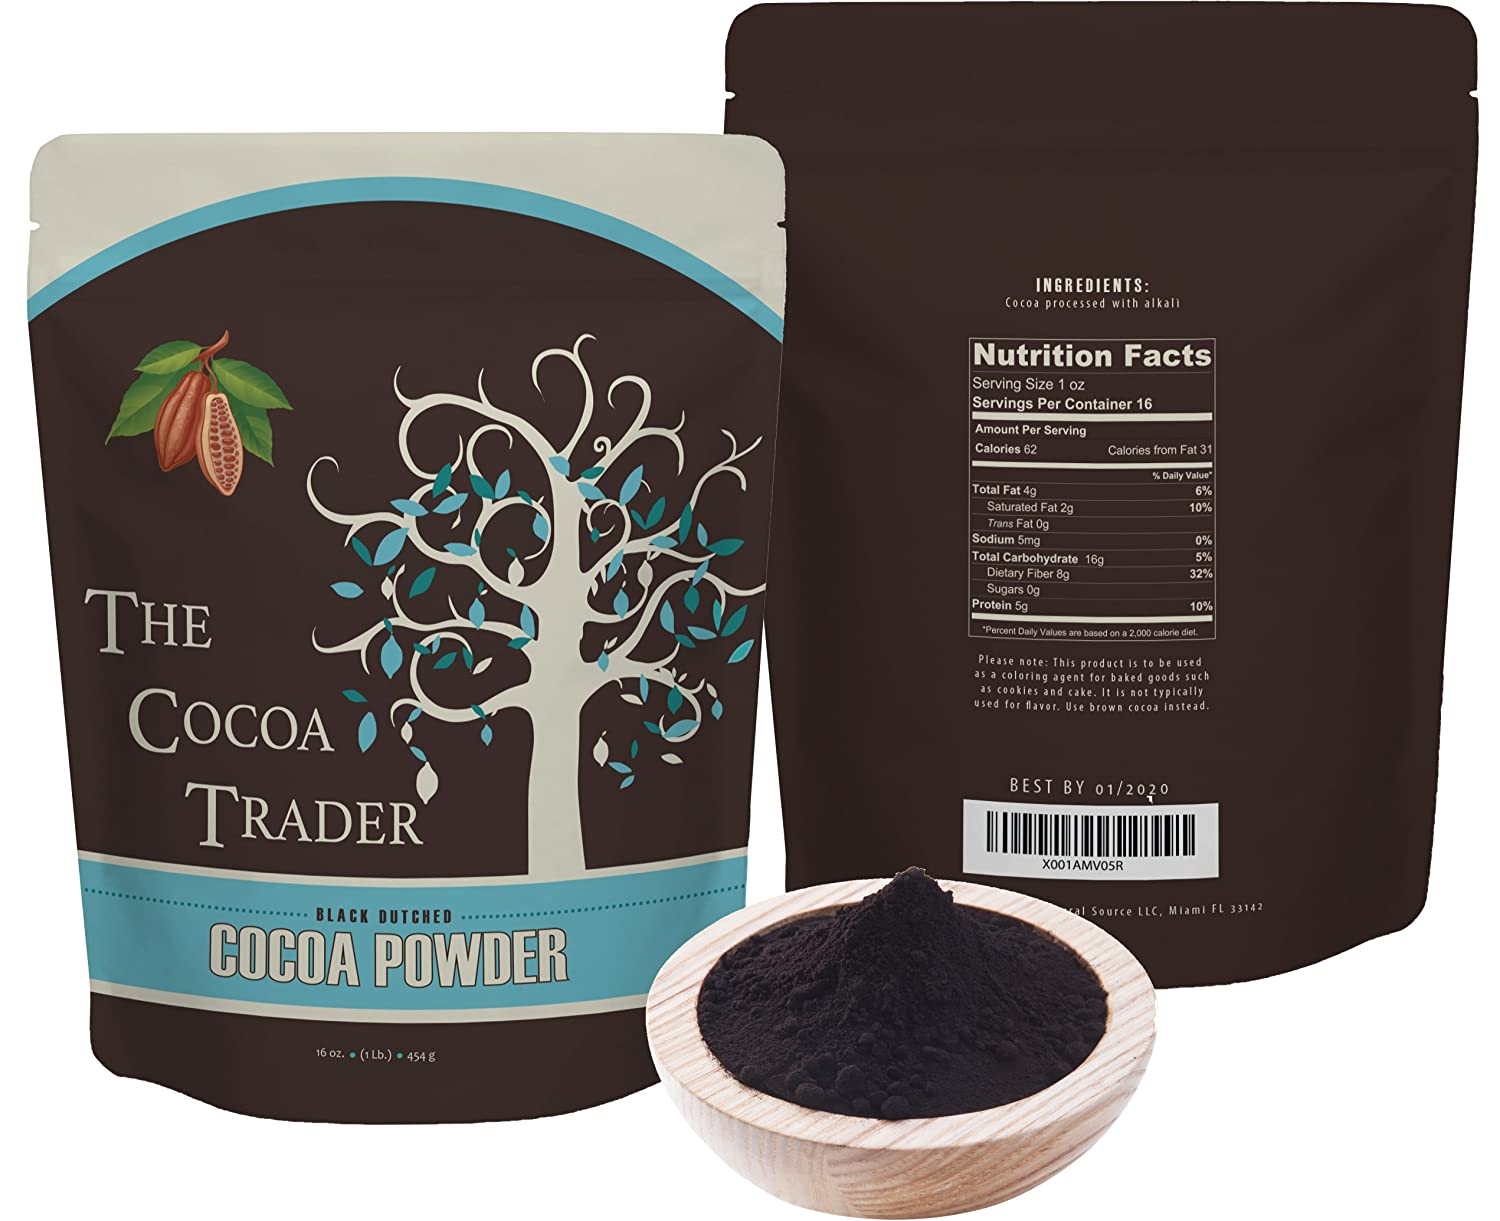 Black Cocoa Powder for Baking- All Natural Alkalized Unsweetened Cocoa for Coloring Agent in Baked Goods - Dutch Processed With Smooth Mellow Flavor - 1 LB, The Cocoa Trader